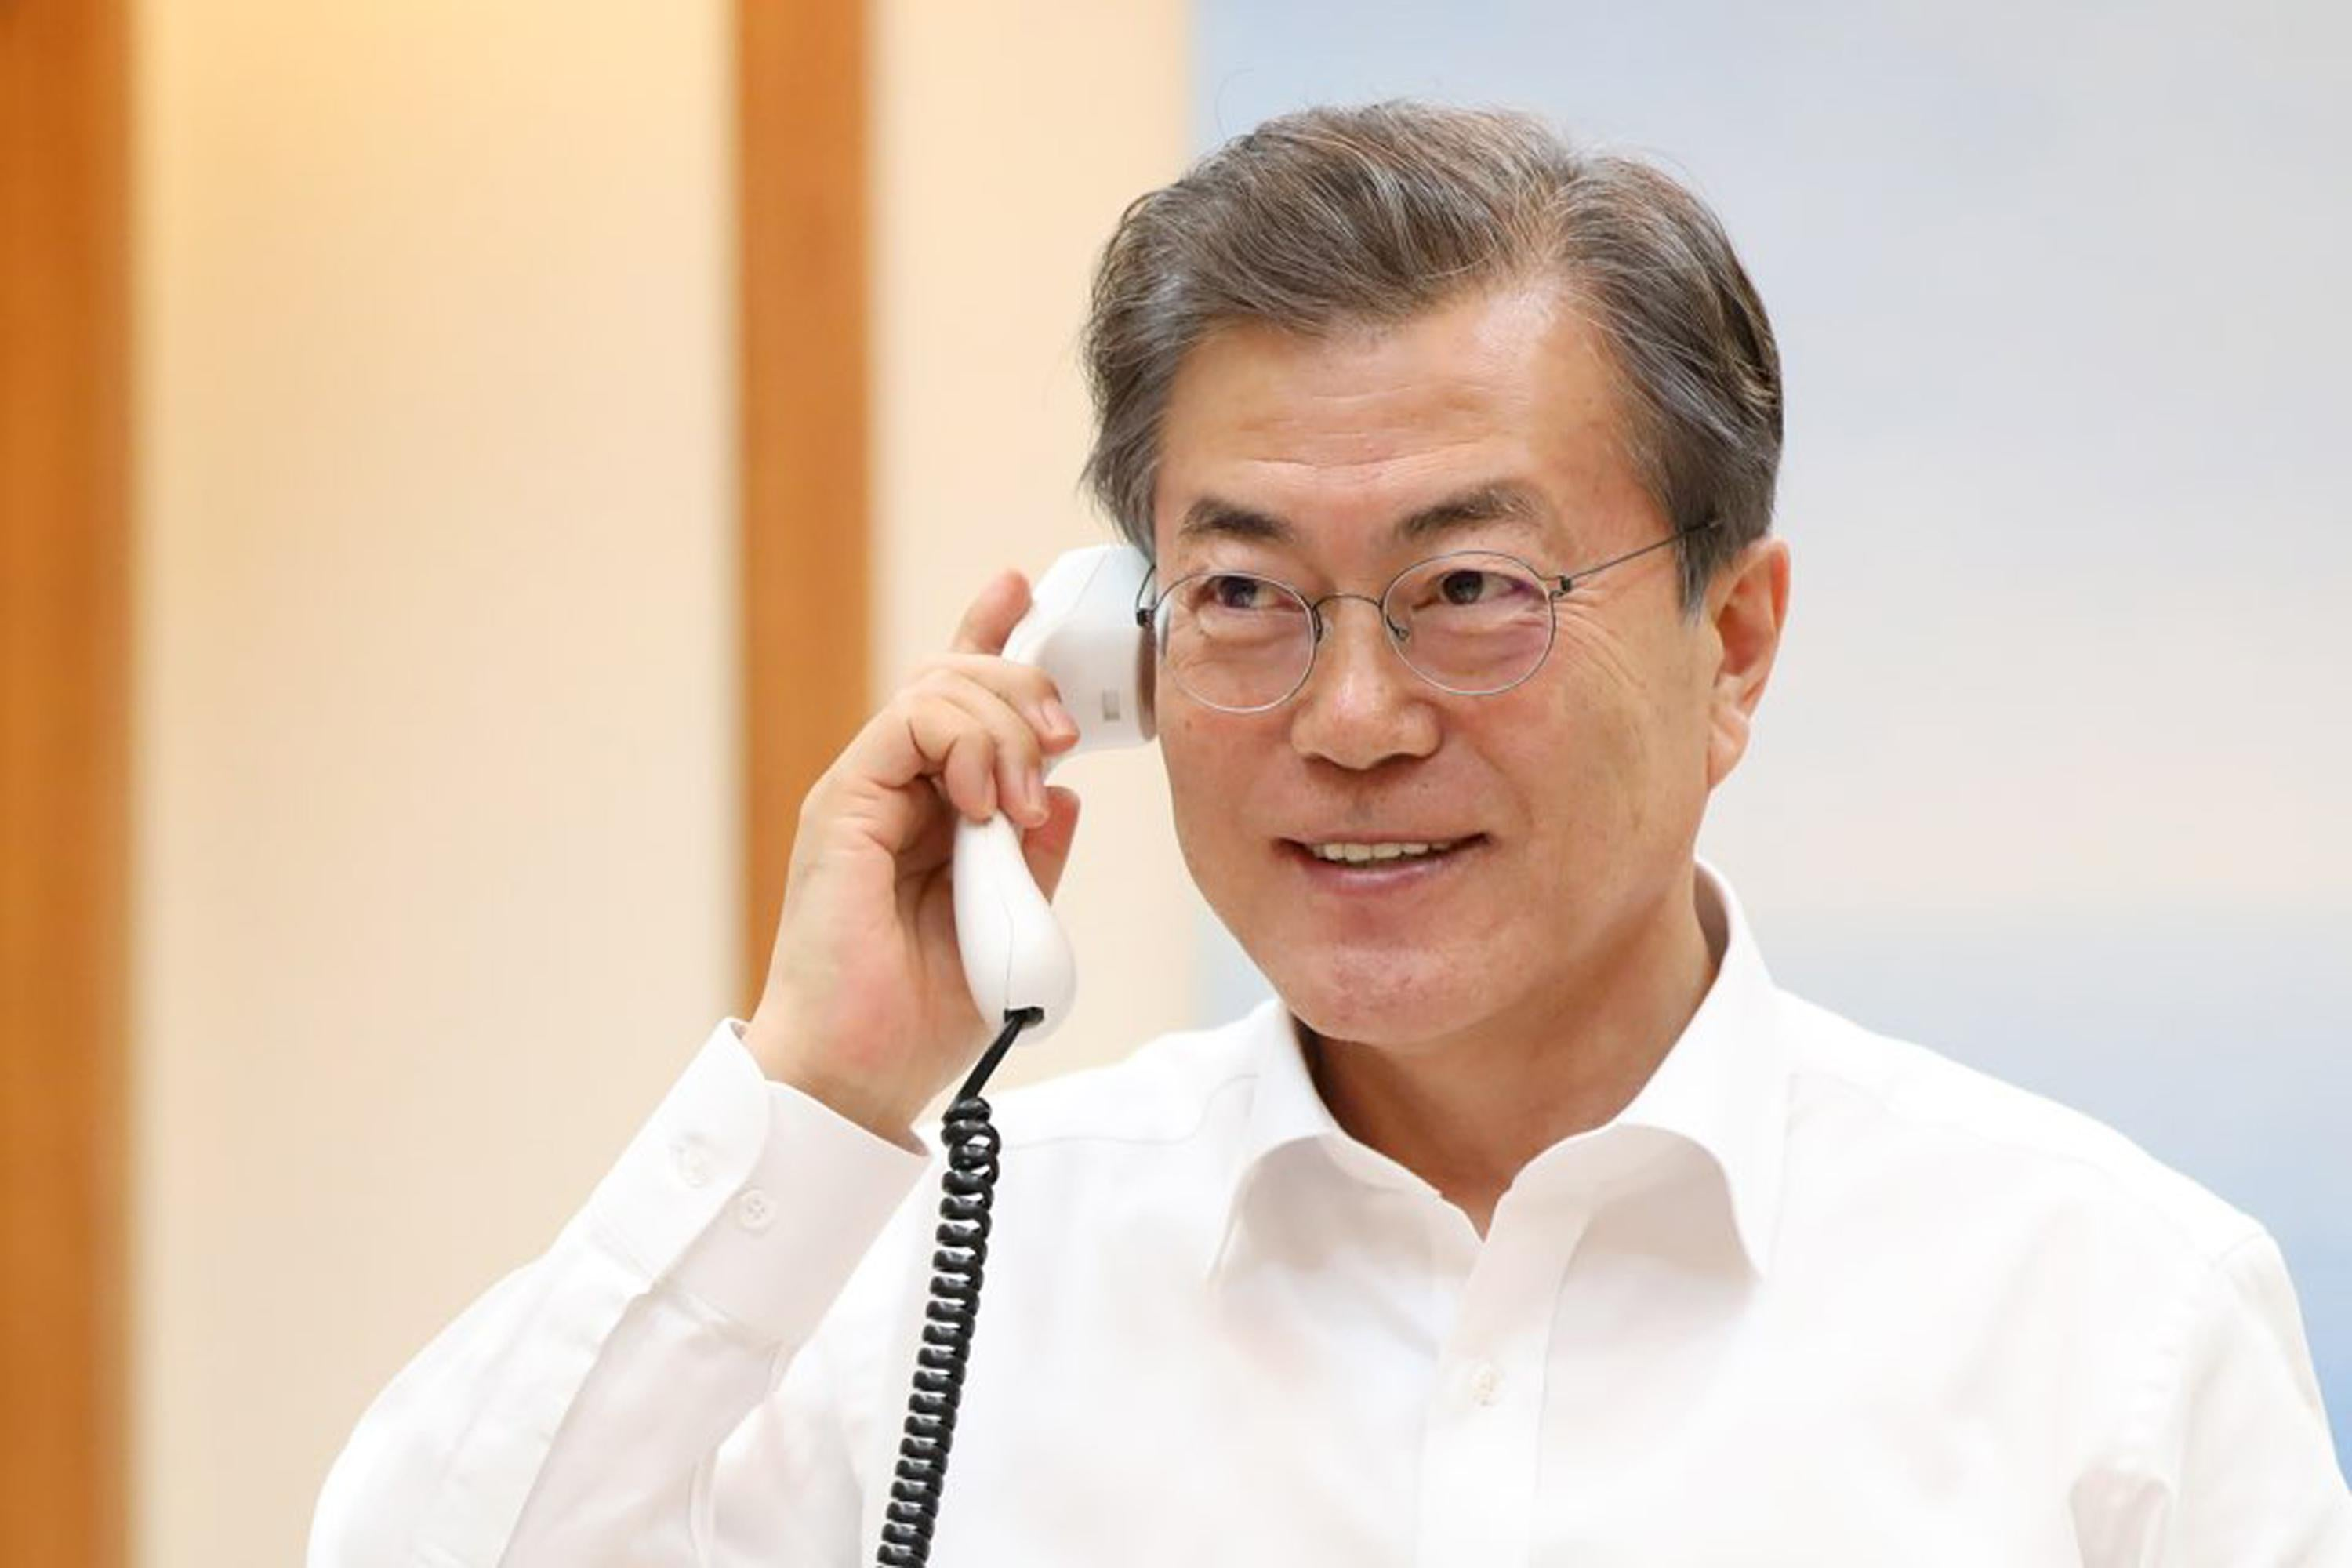 SEOUL, SOUTH KOREA - JANUARY 04:  In this handout image provided by the South Korean Presidential Blue House, South Korean President Moon Jae-in talks with U.S. President Donald Trump on January 4, 2018 in Seoul, South Korea. South Korean and U.S. agreed to delay joint military drills during the PyeongChang Winter Olympic Games.  (Photo by South Korean Presidential Blue House via Getty Images)